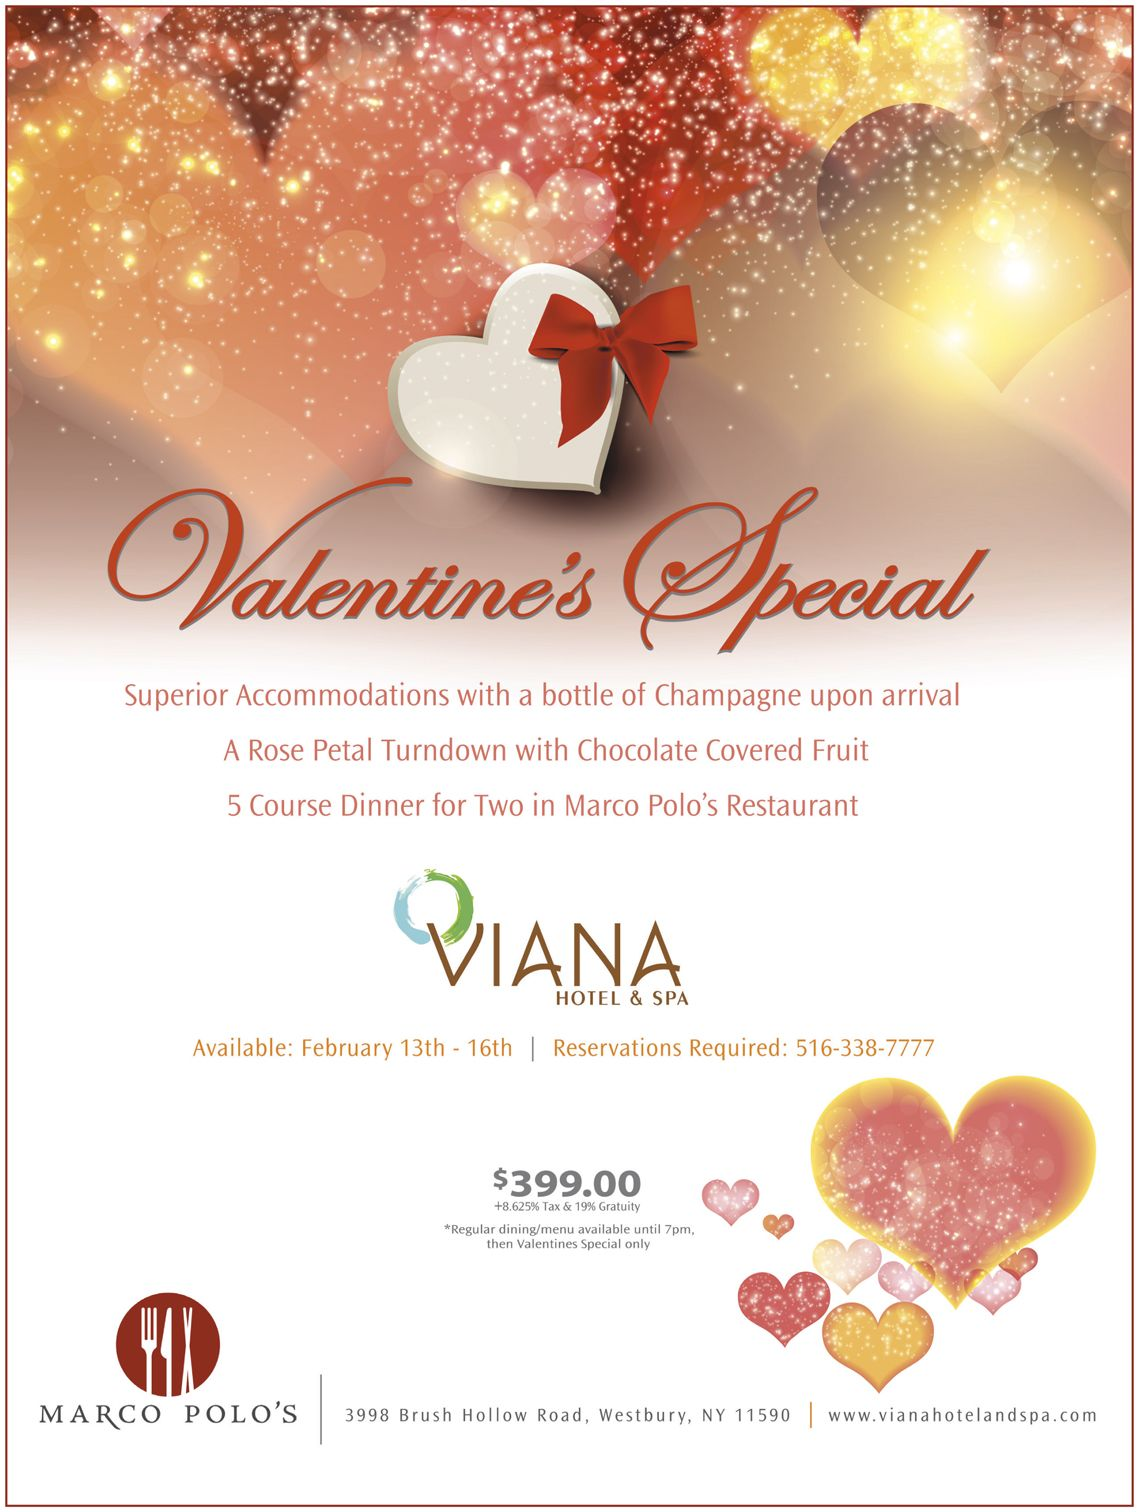 Valentines Special at the Viana Hotel and Spa. Valentine